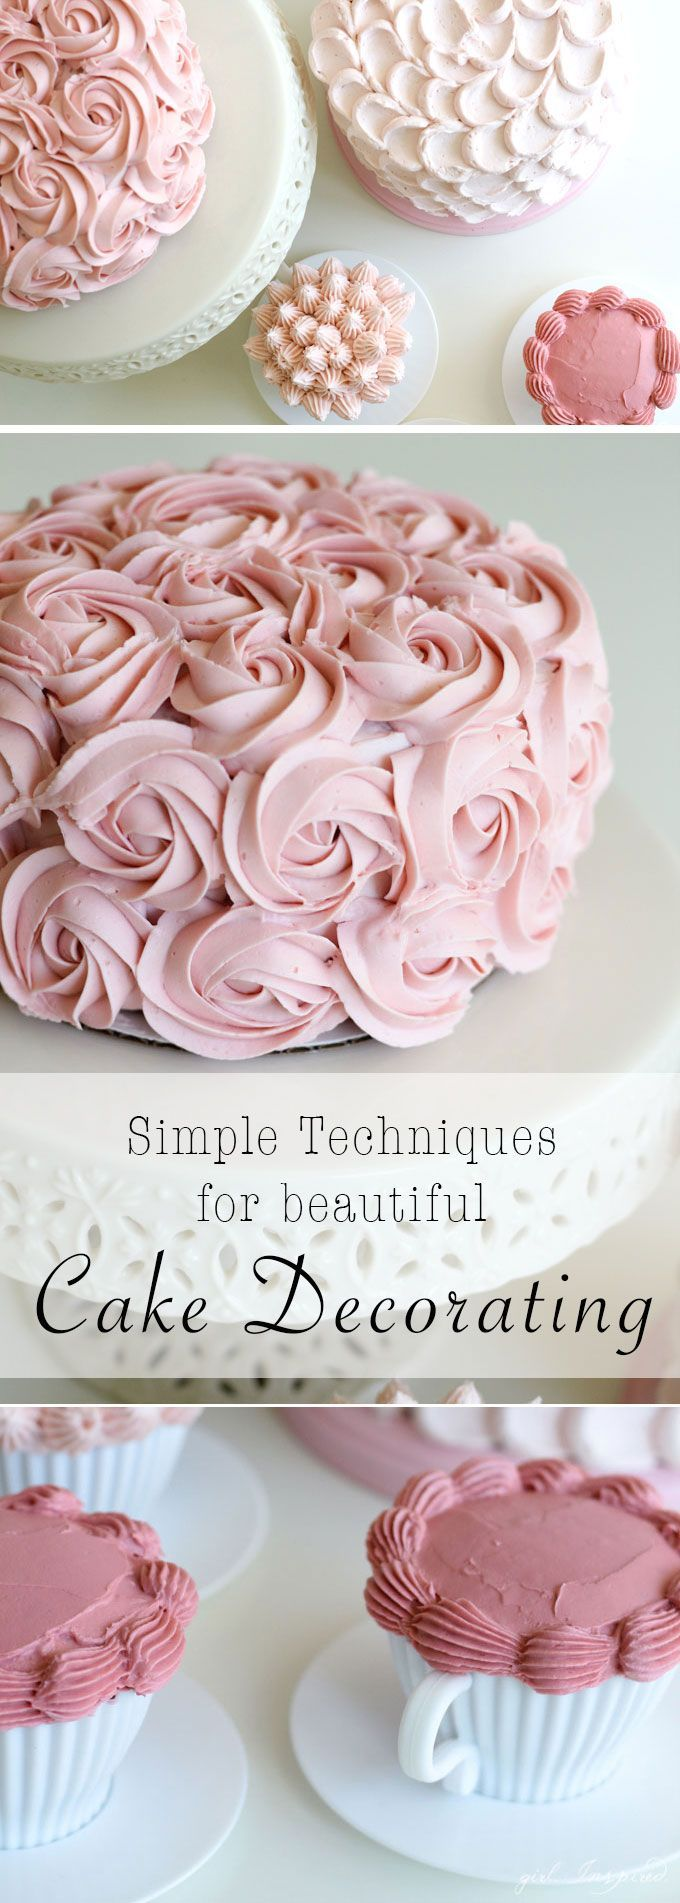 Best 25 simple cake decorating ideas on pinterest simple cakes easy cake decorating and kid cakes